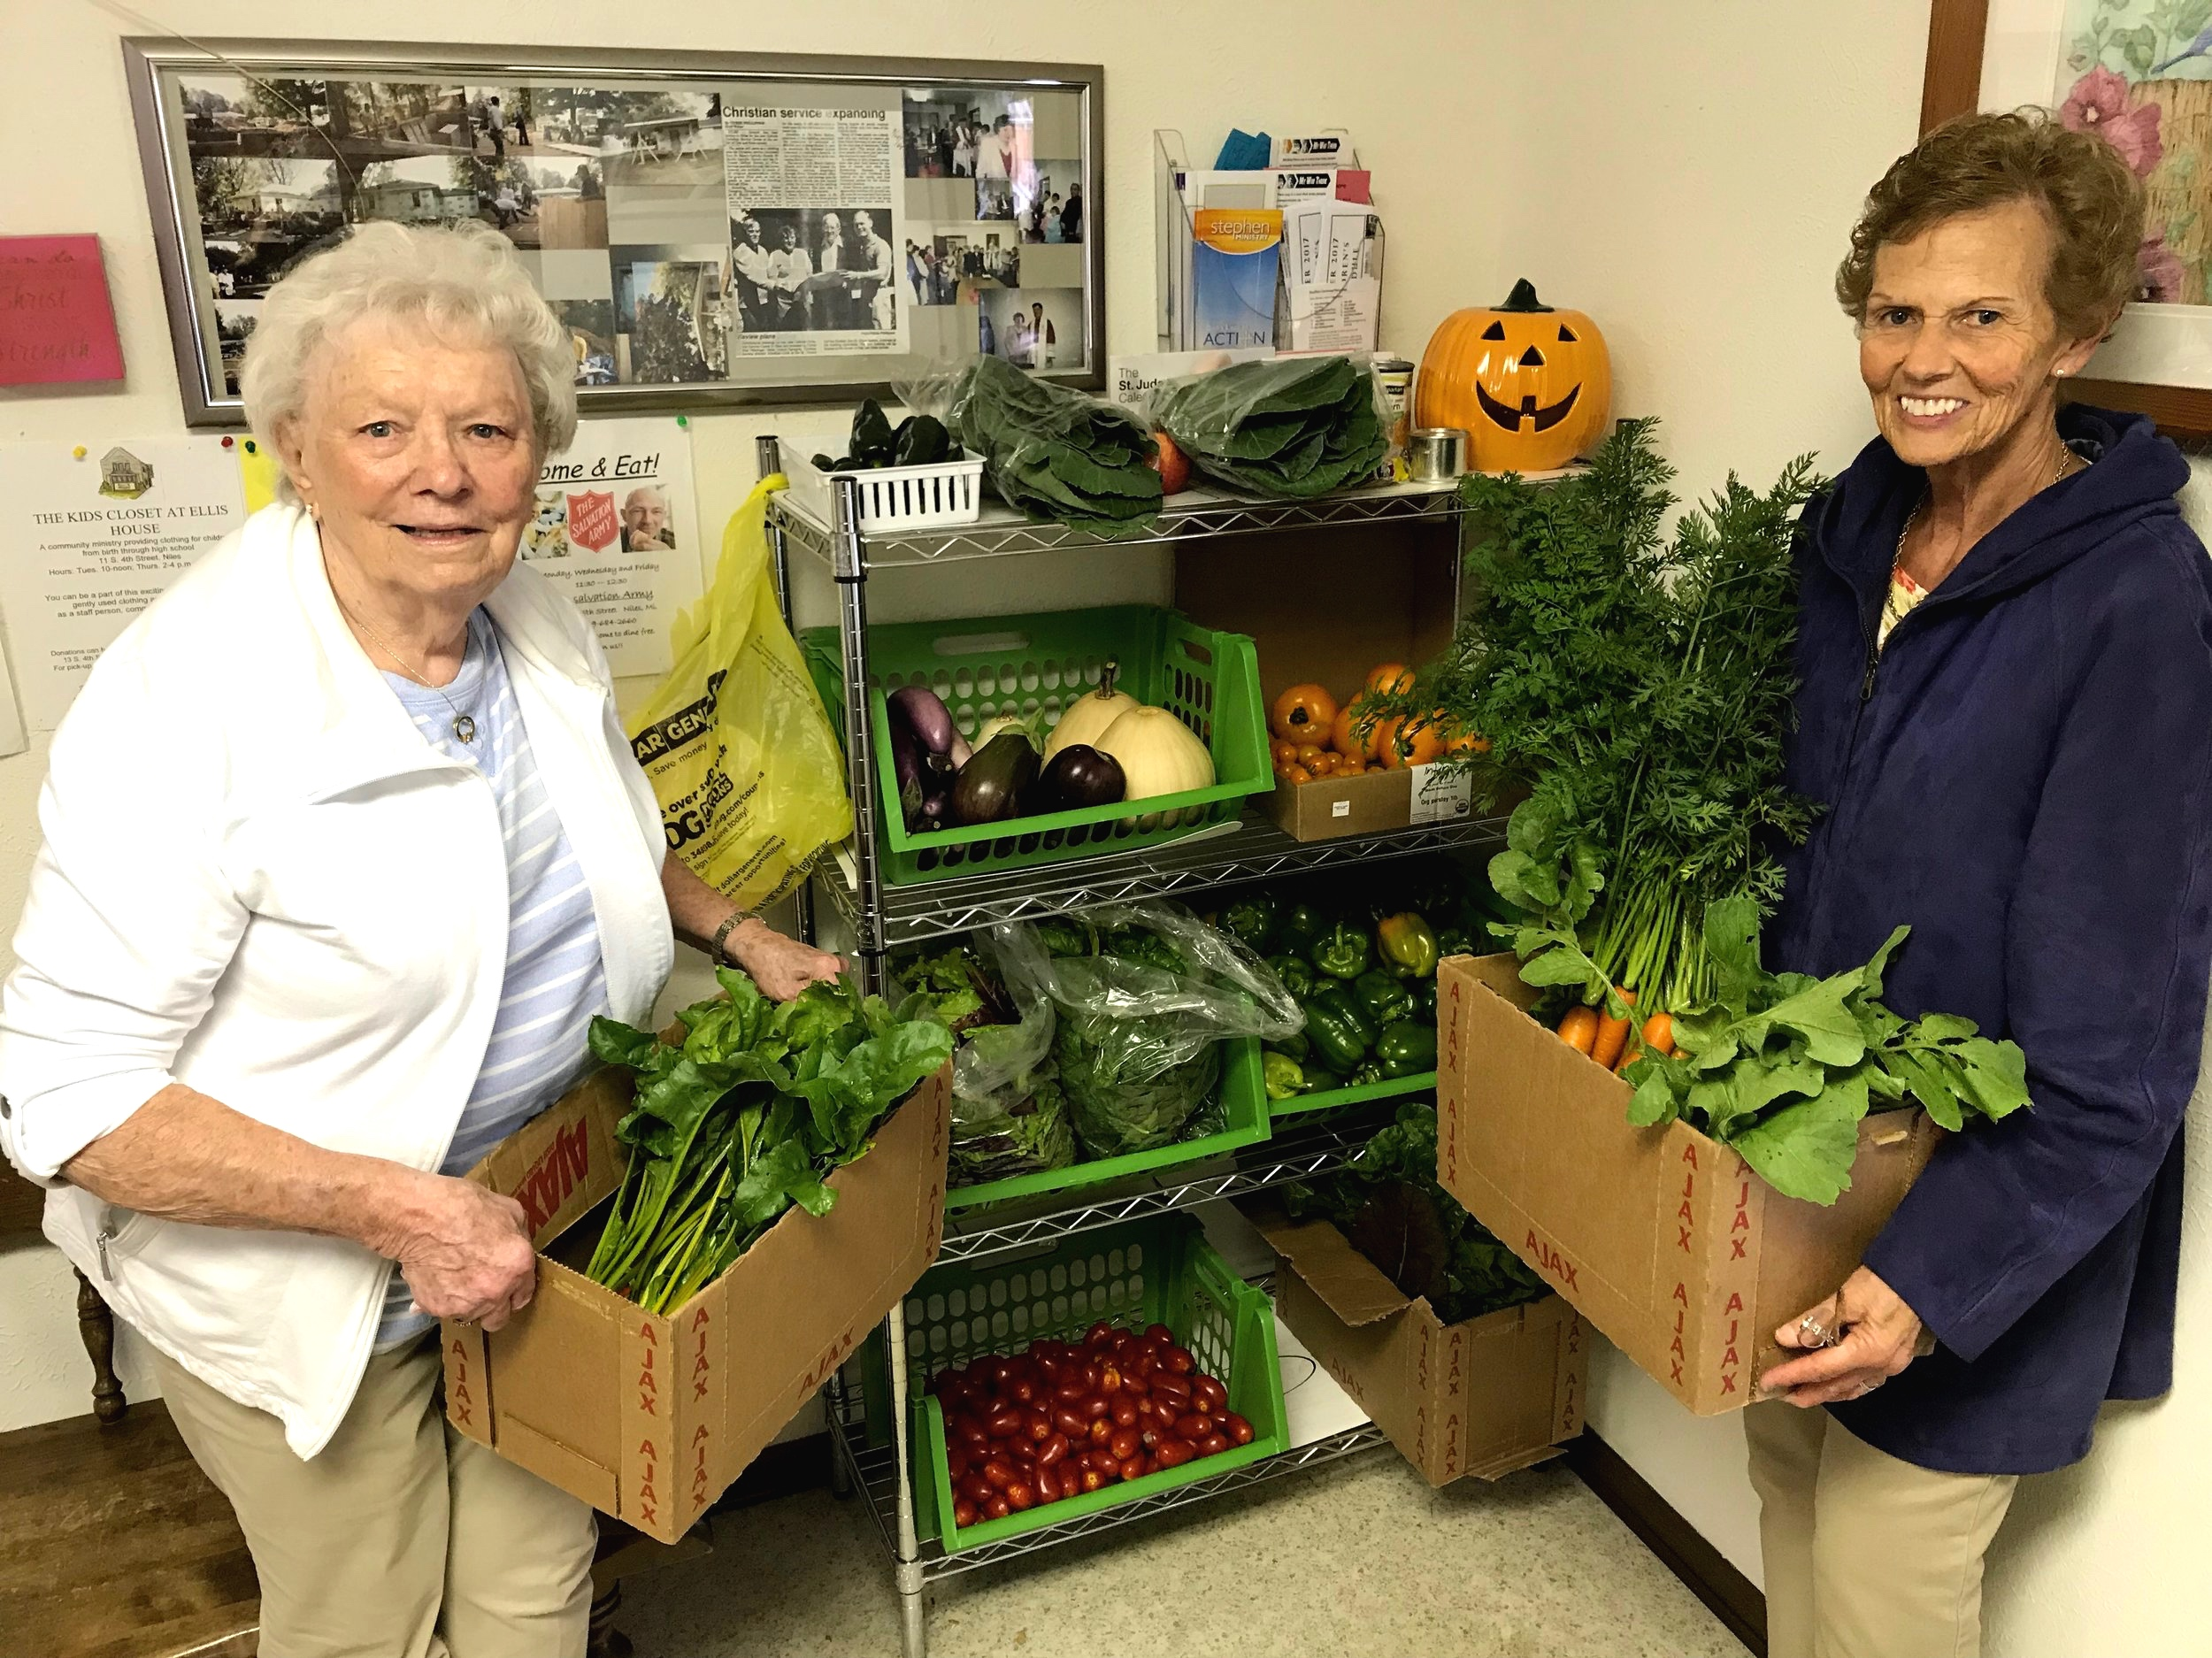 The lovely volunteers of St Mary's food pantry in Niles finding shelf space for HFFF donations